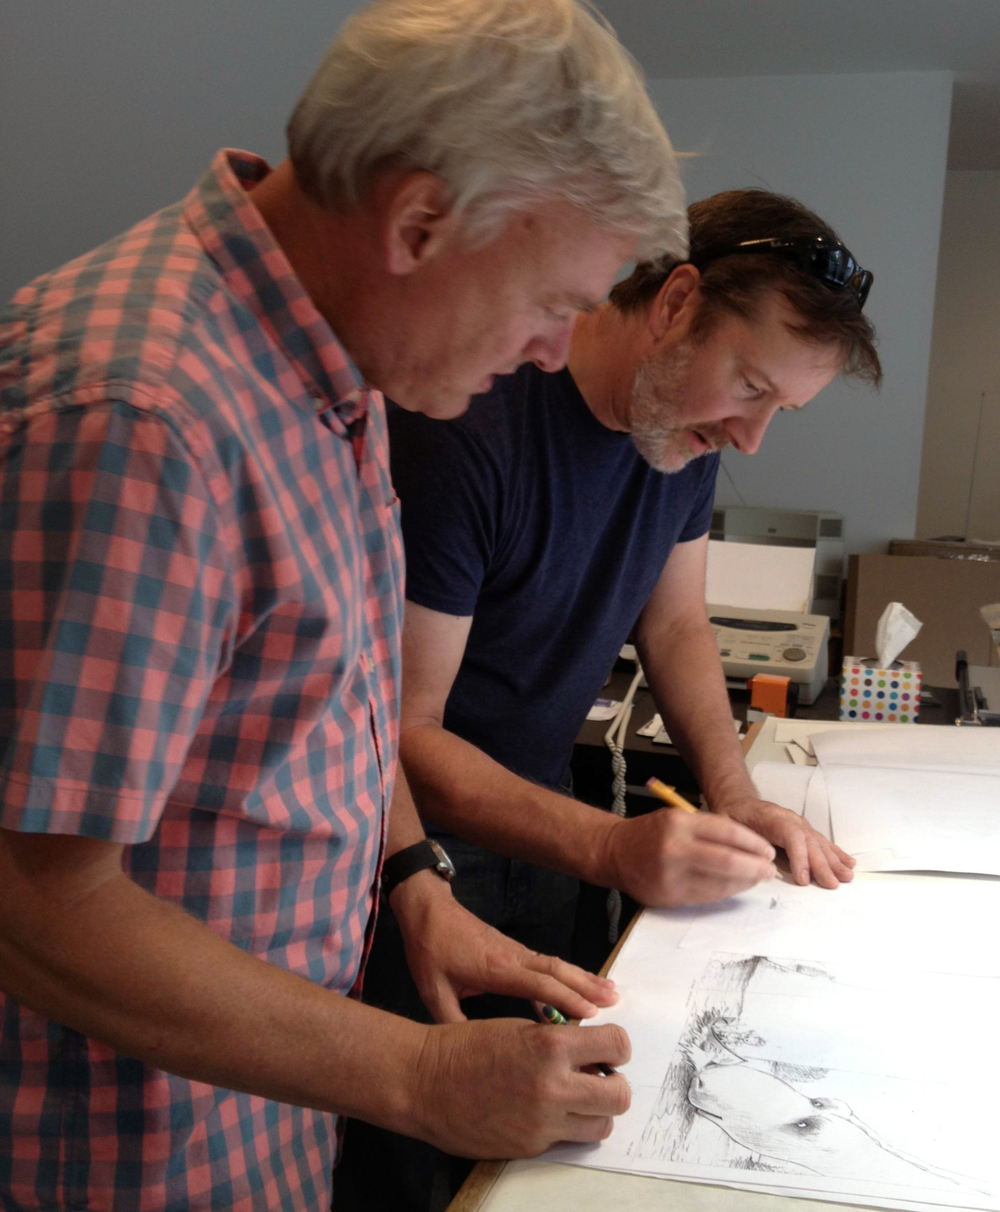 Visiting the author/illustrator Chris Van Dusen at his studio in Maine, 2014.